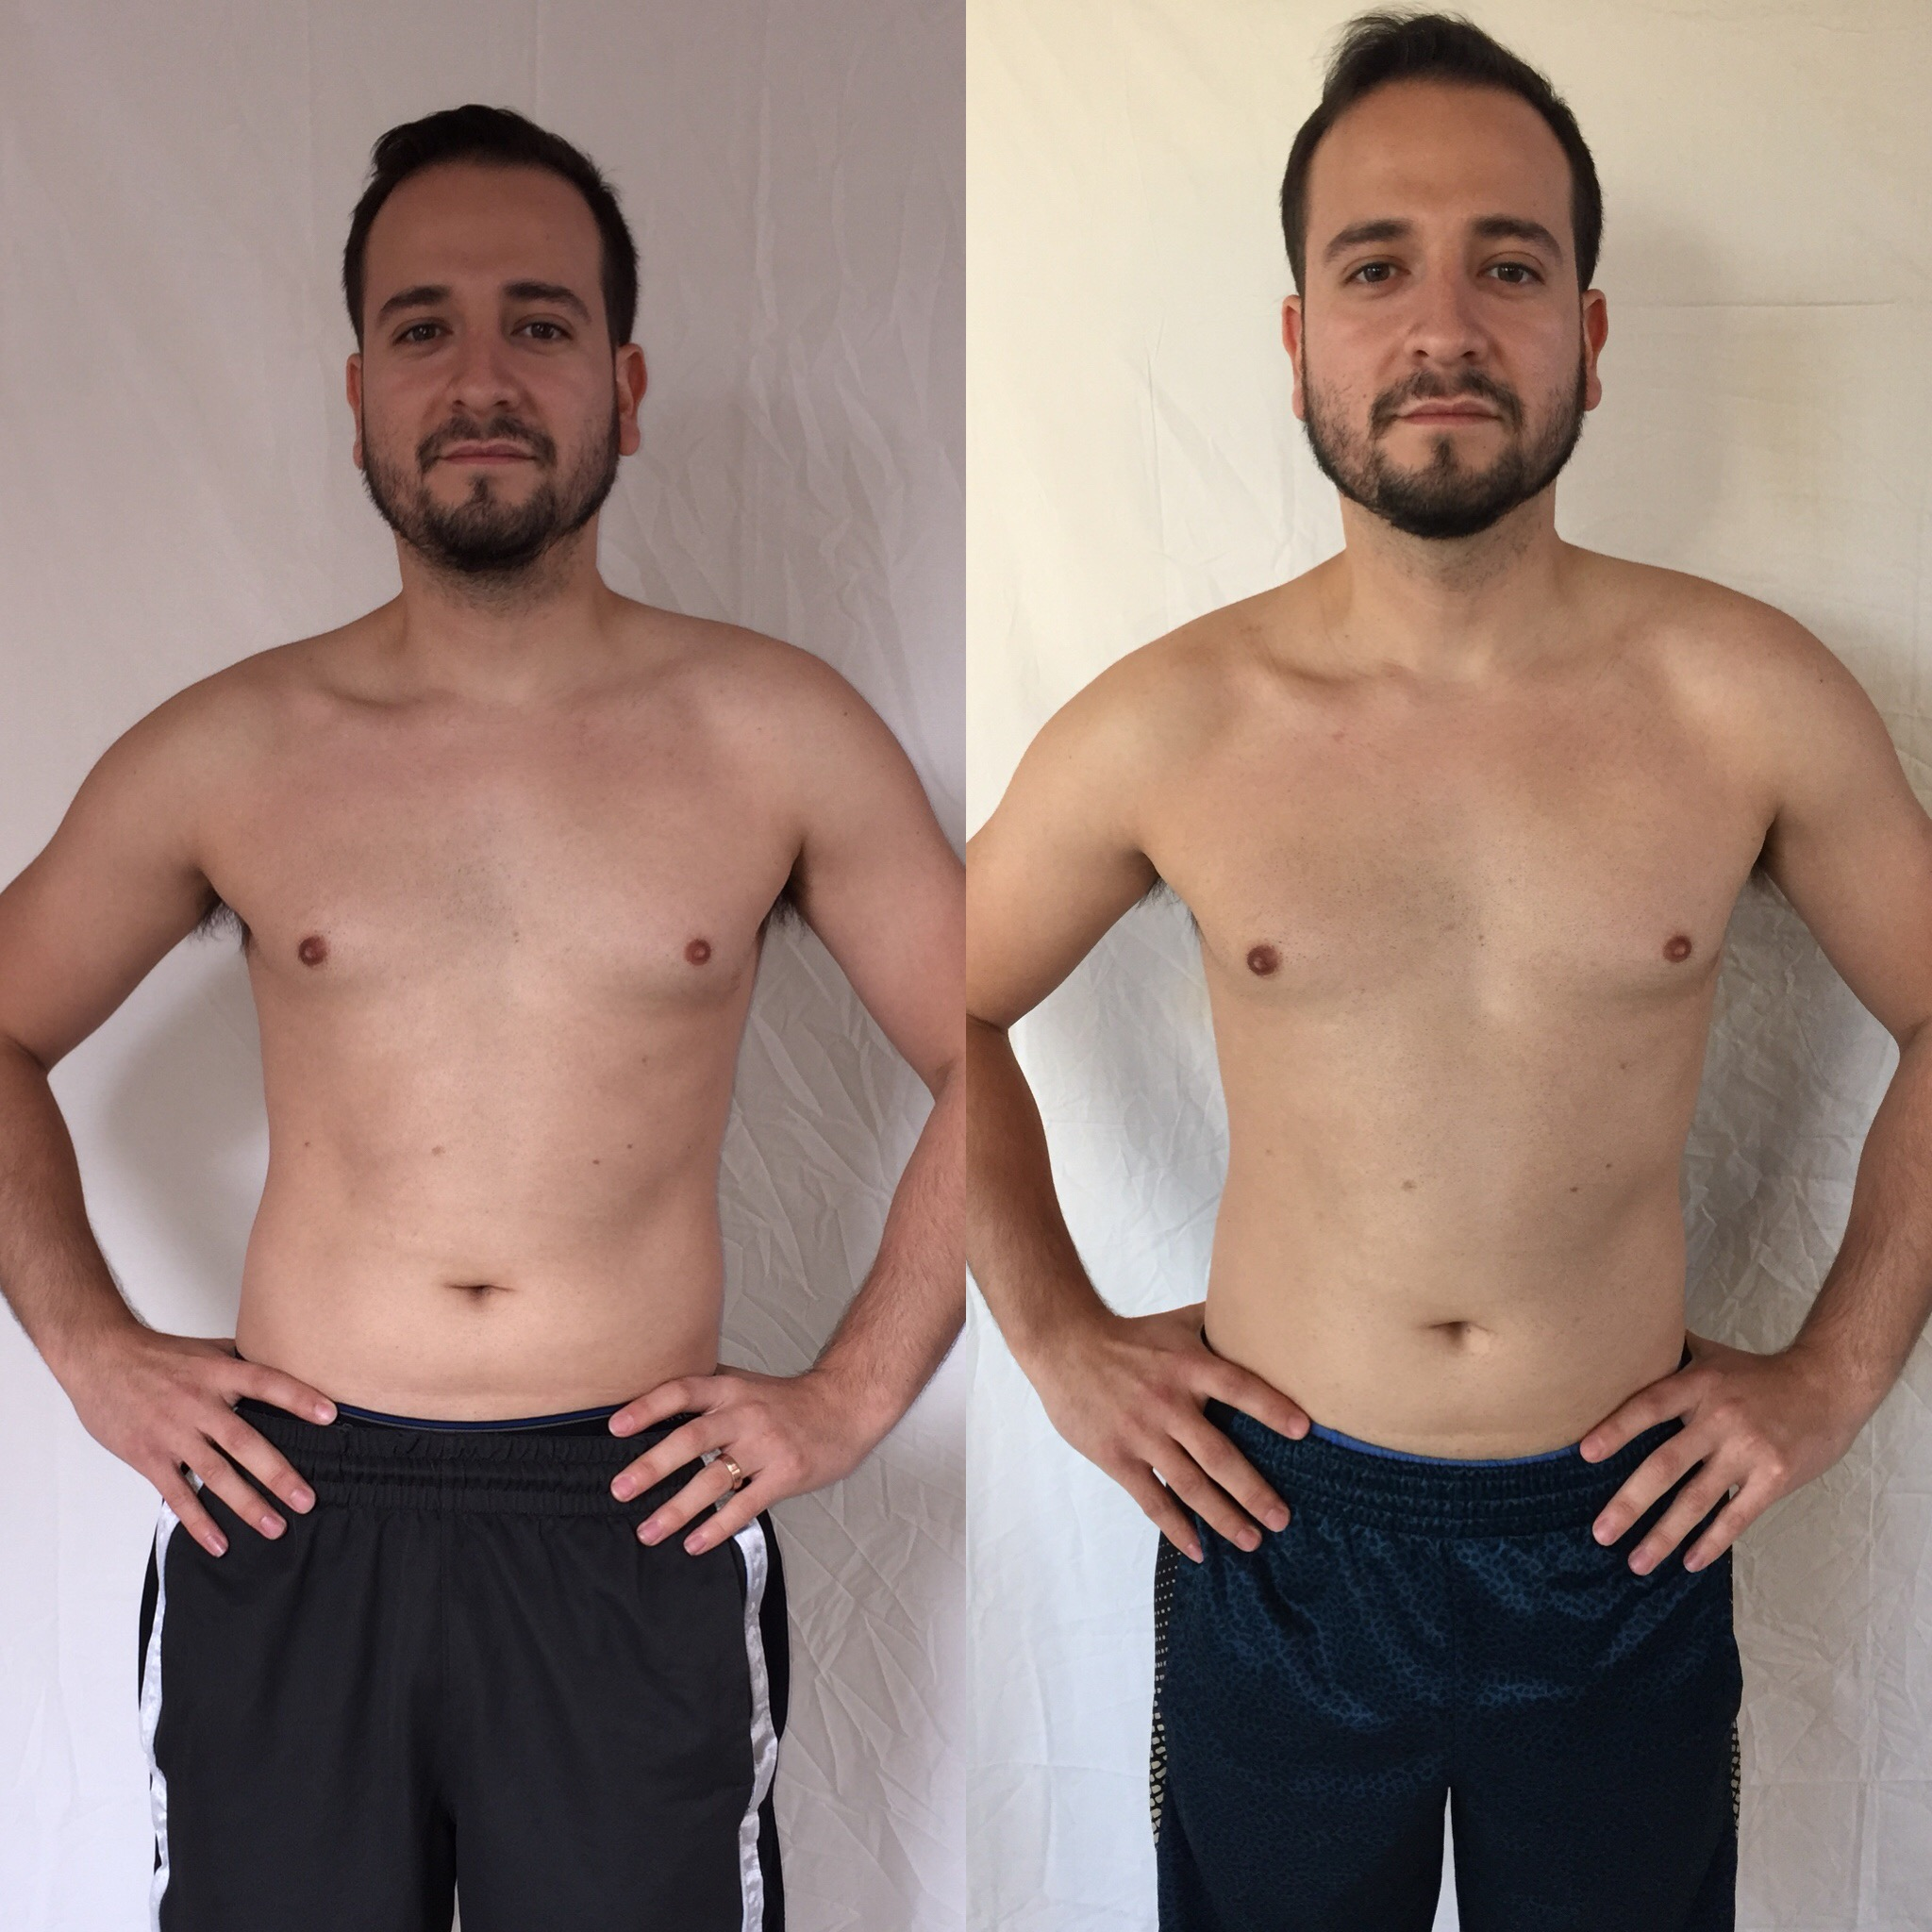 I lost 6 lbs in 2 weeks on the keto diet - CarbstoKeto